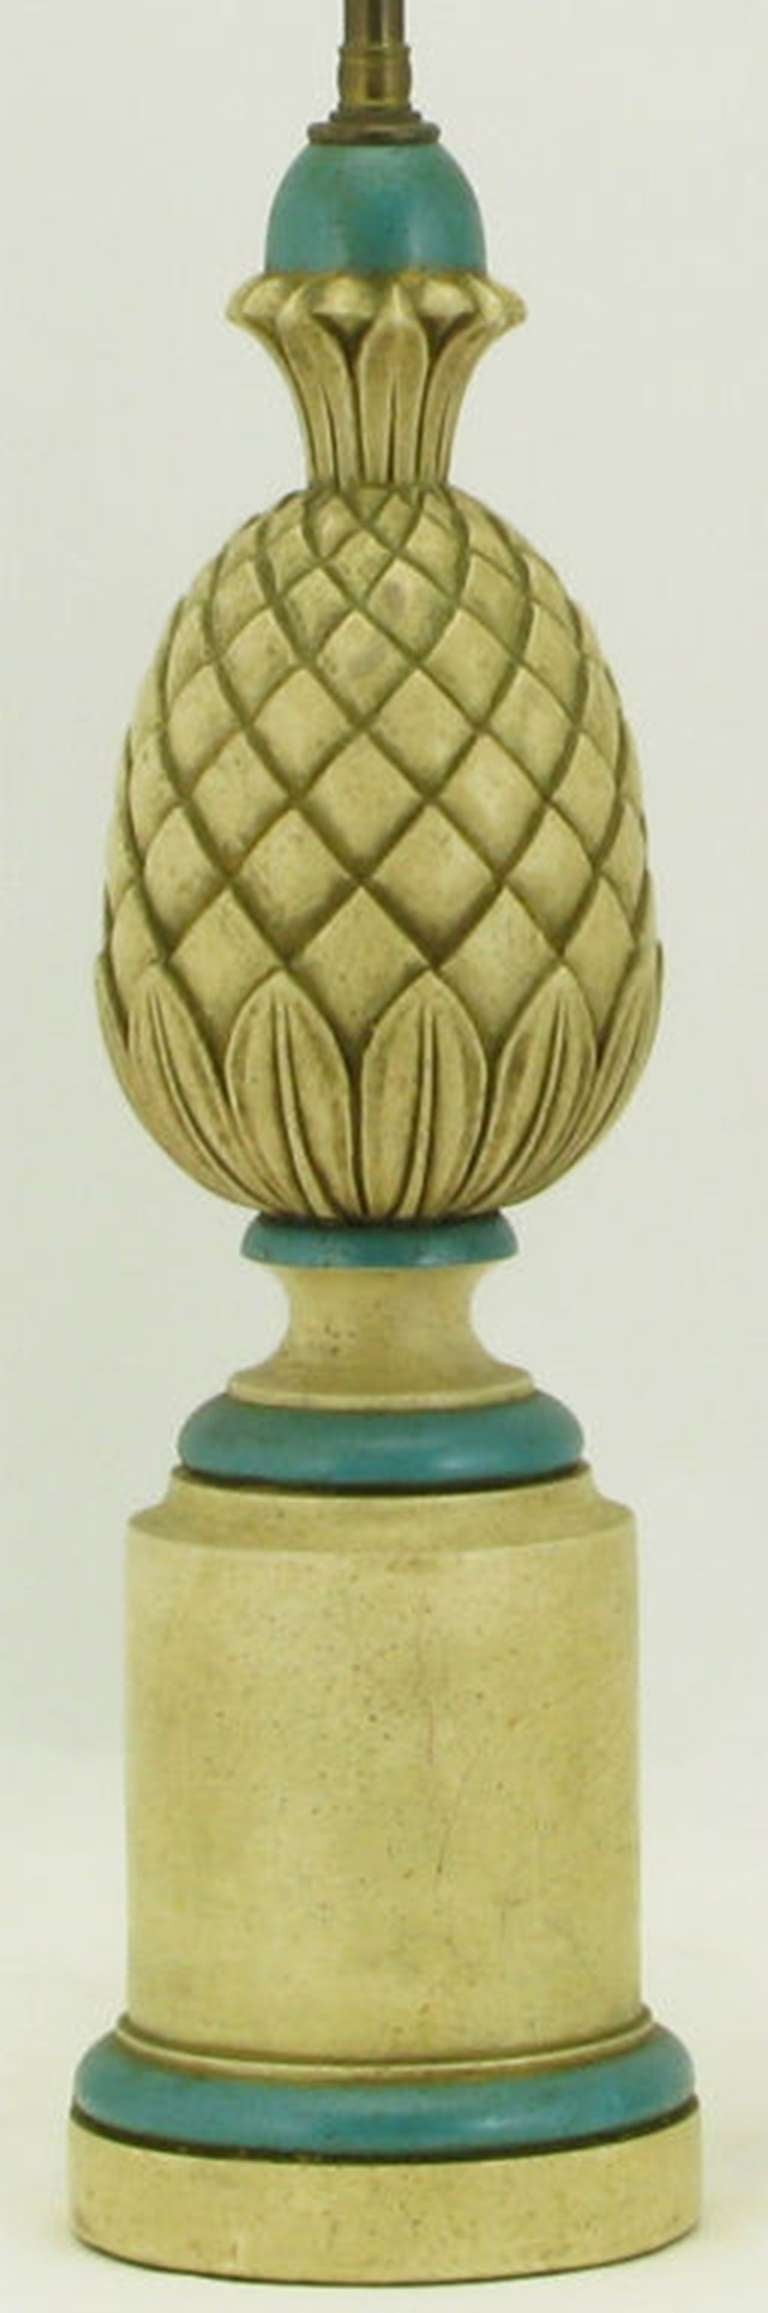 Pair of 1940s Cream and Blue Gesso Pineapple Table Lamps In Excellent Condition For Sale In Chicago, IL